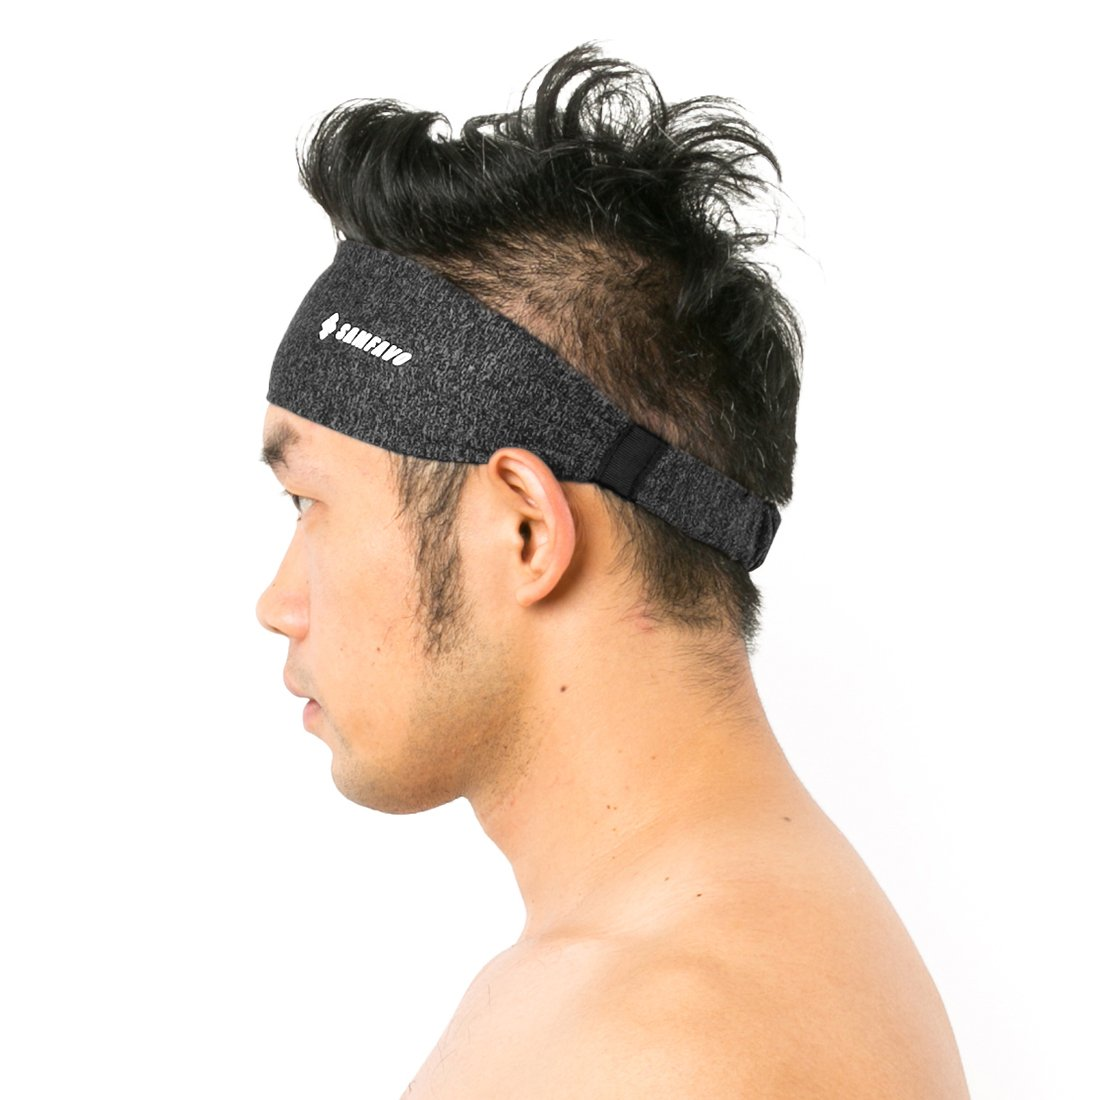 Sports Perspiration /& Forehead Protection Suite for Running Fitness Yoga Workout Headbands for Women and Men Basketball